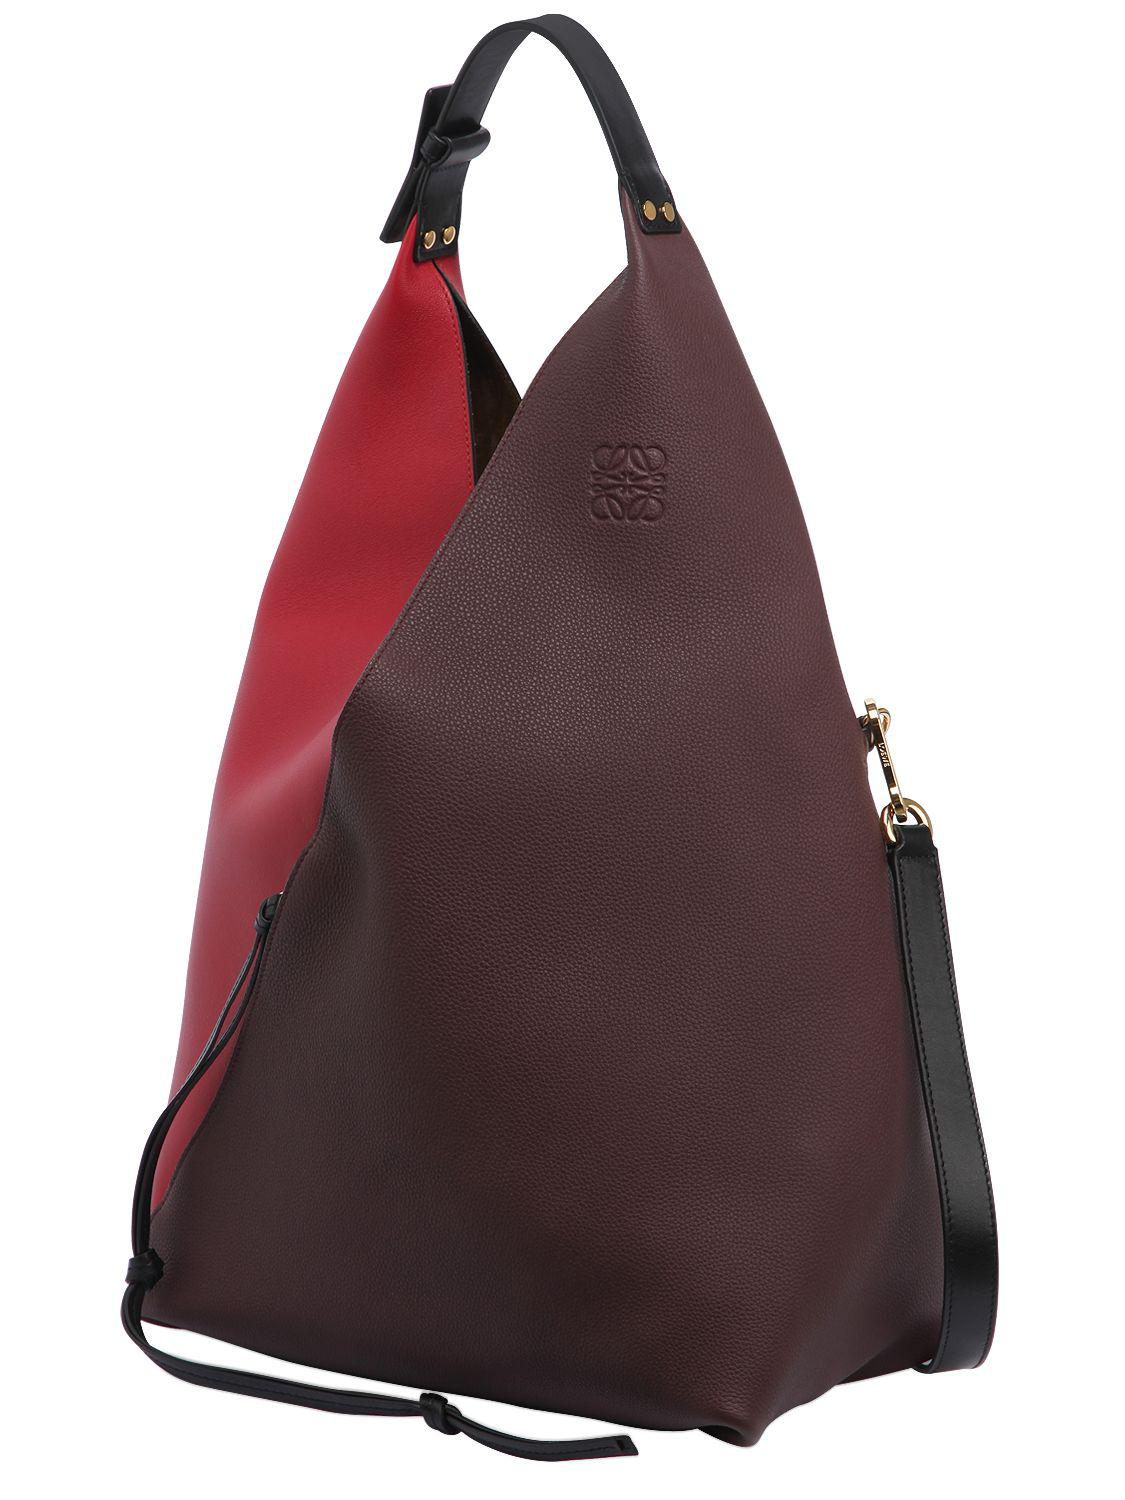 2c3ee5b2a Loewe Color Block Sling Leather Hobo Bag in Red - Lyst